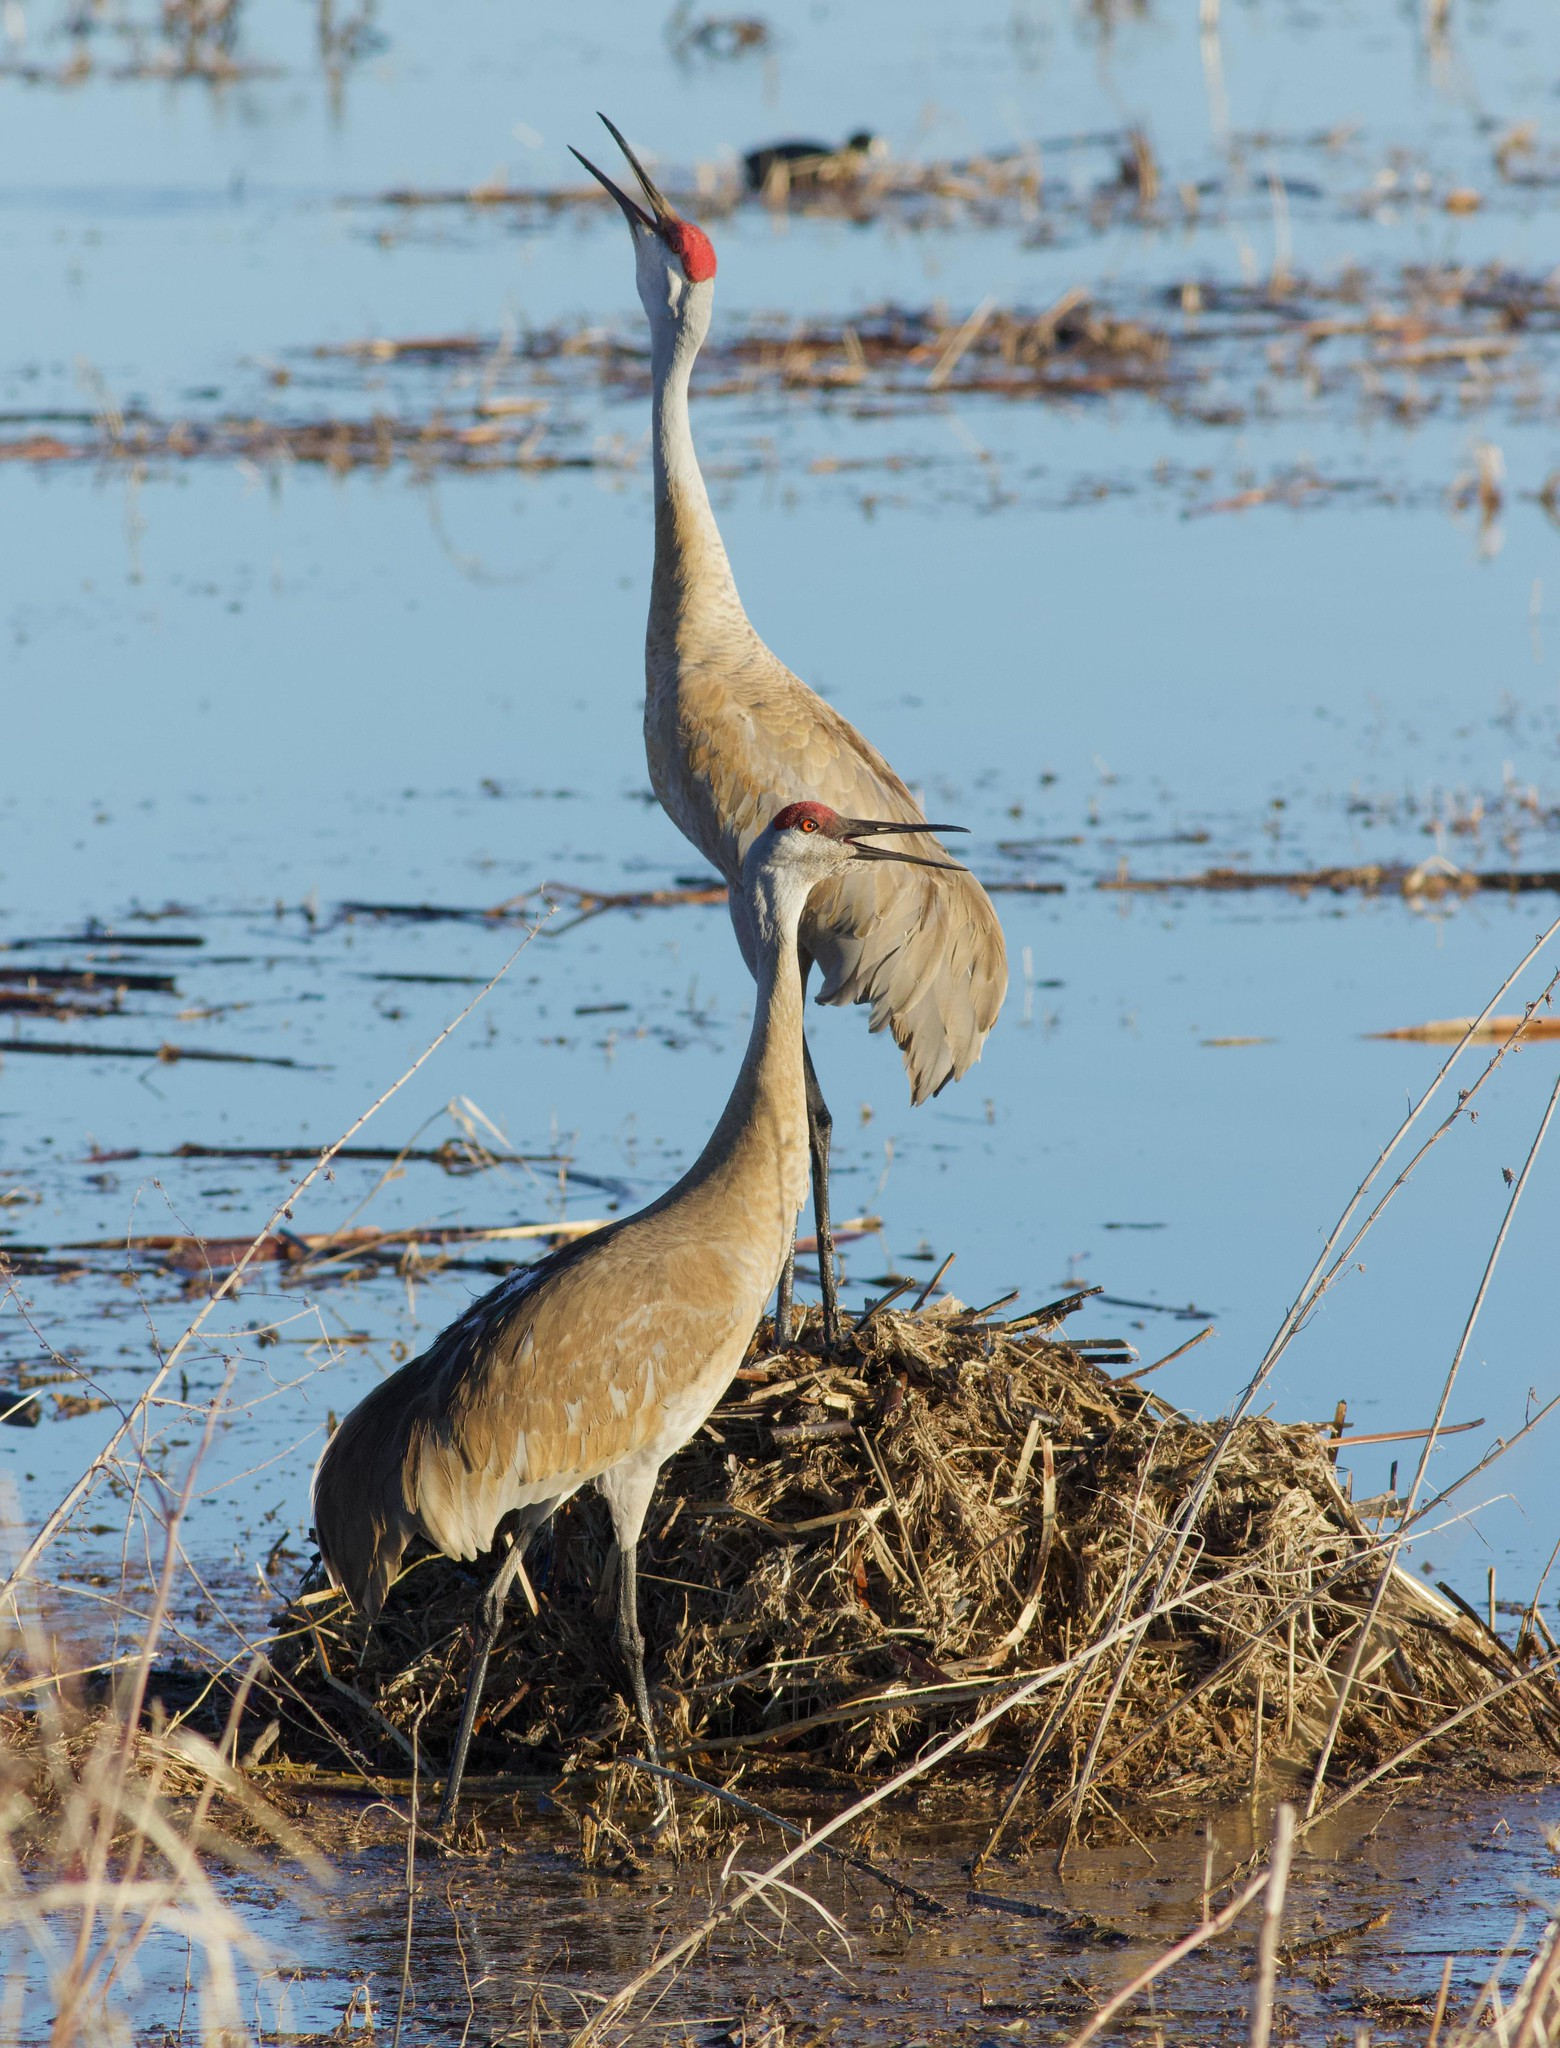 Sandhill crane pair in calling in unison at Goose Pond. Photo by Arlene Koziol